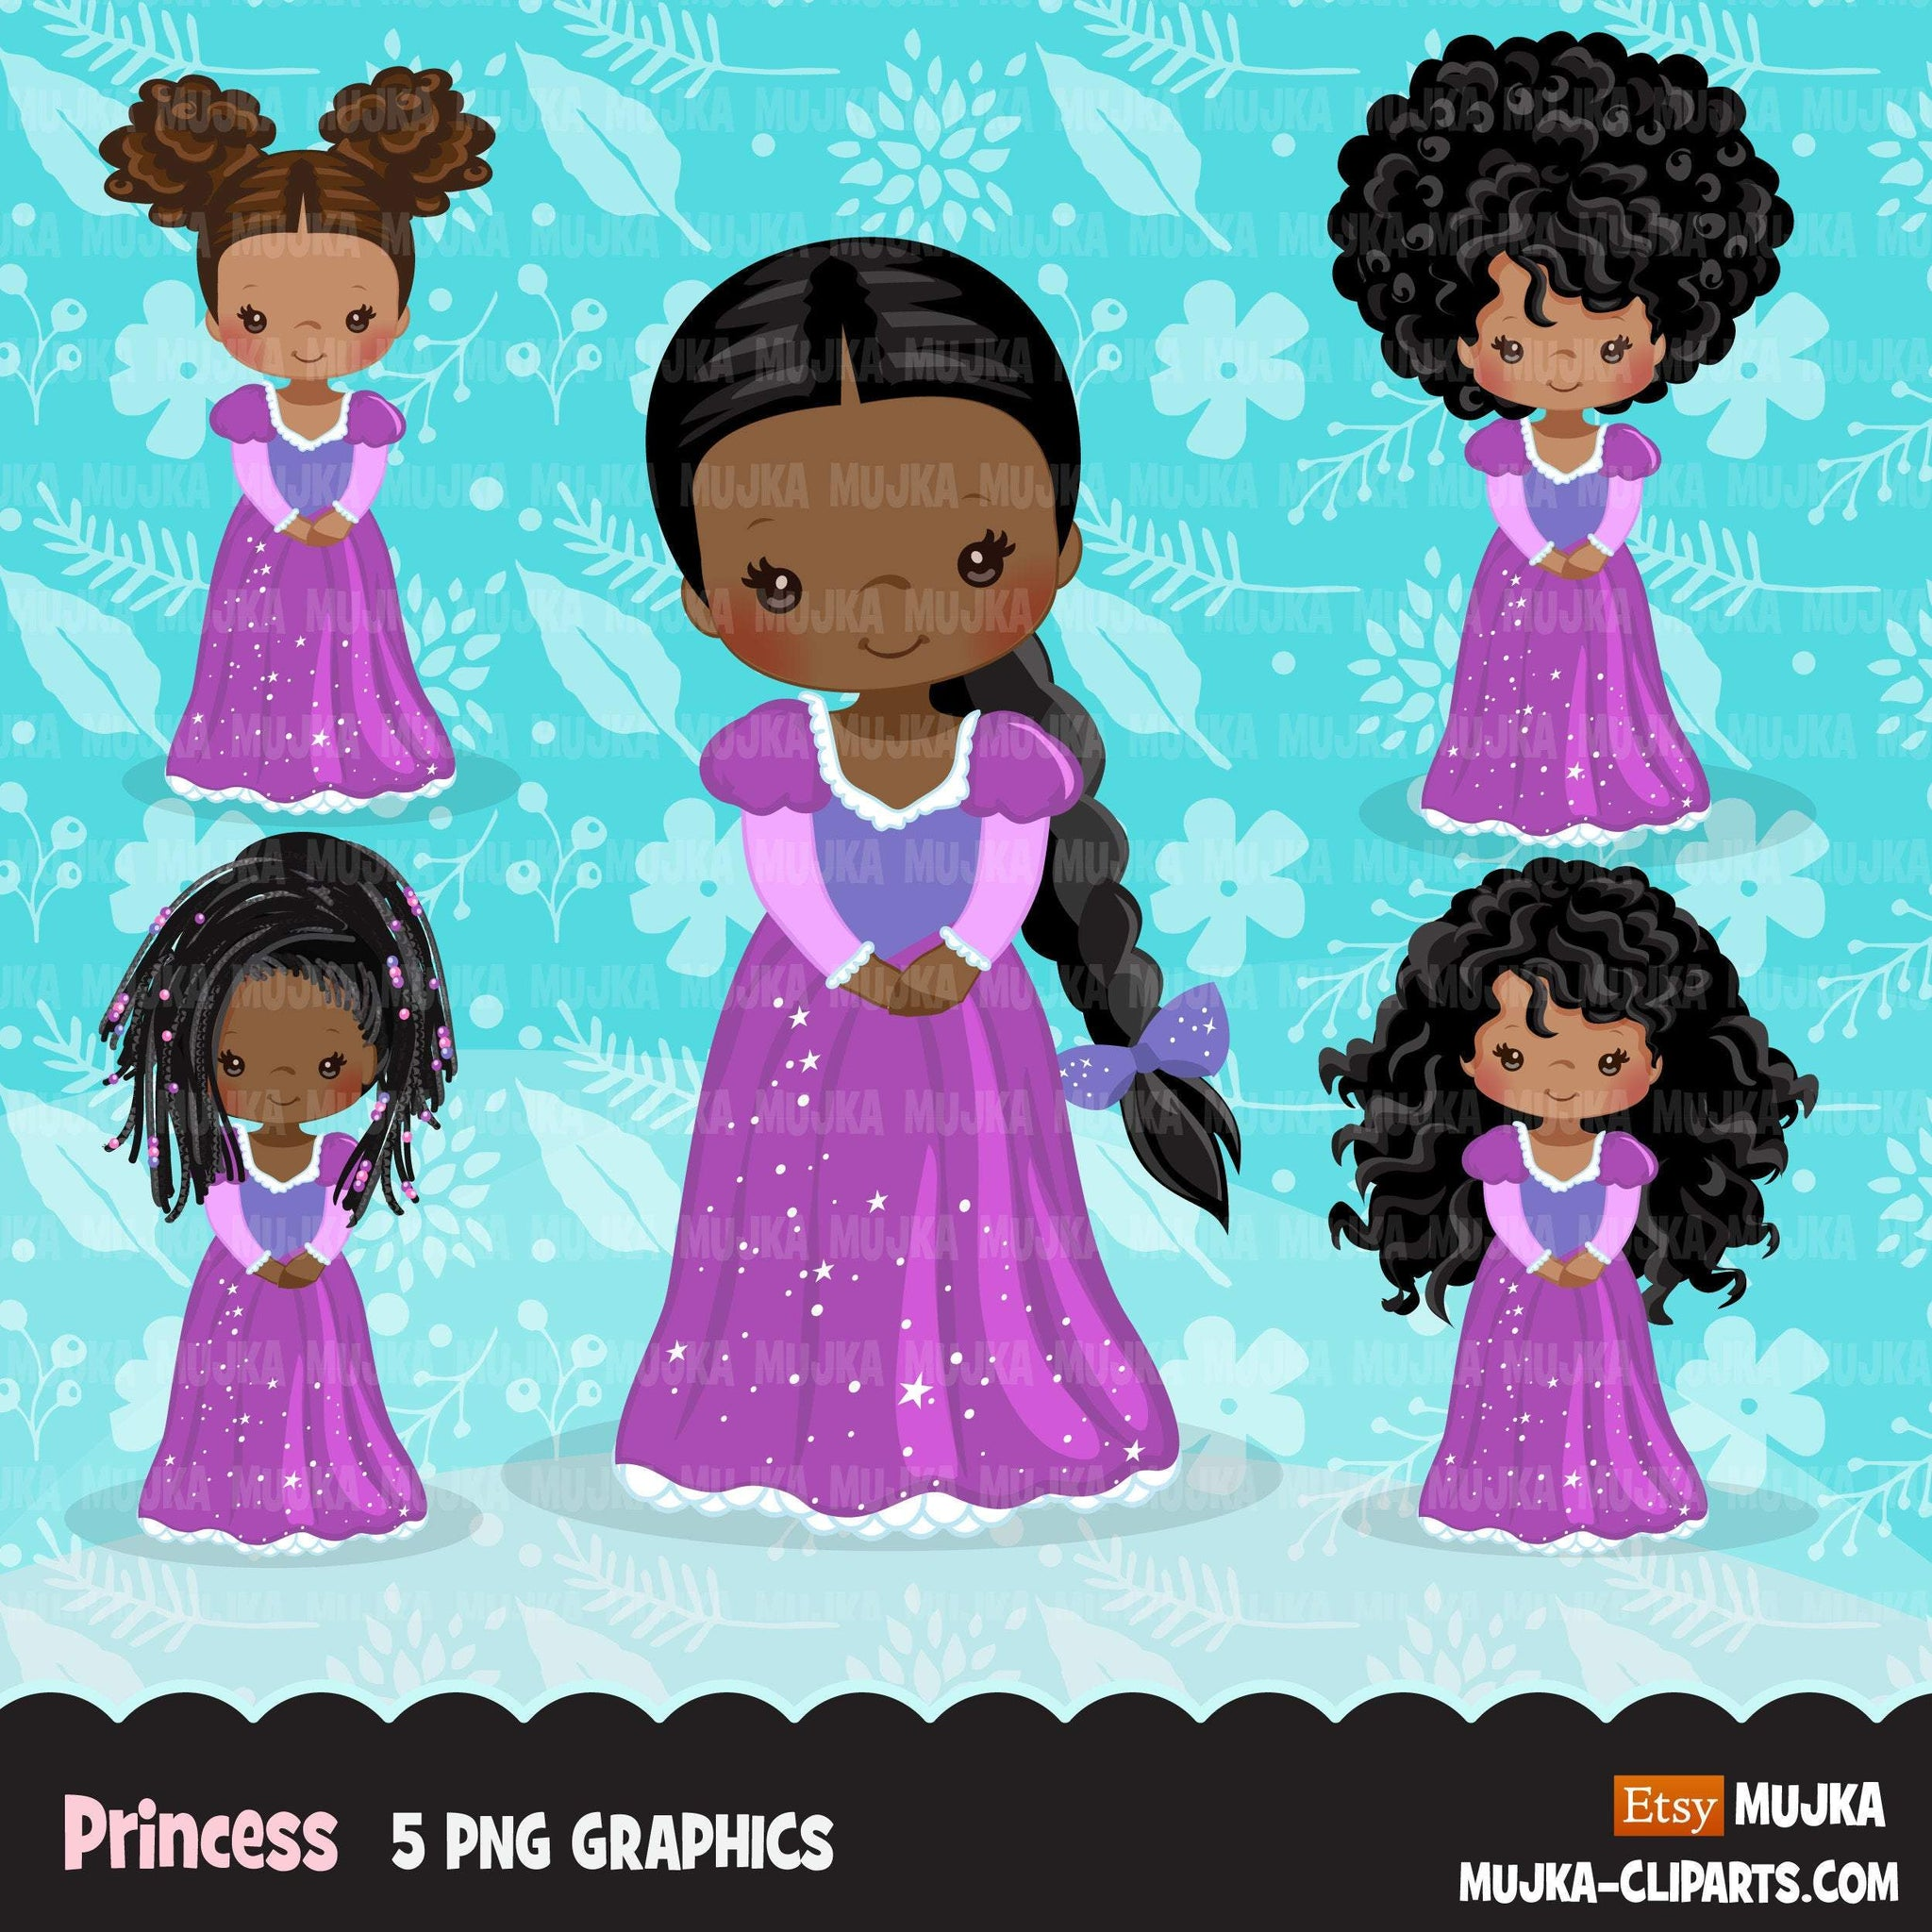 Black Princess clipart, fairy tale graphics, girls story book, purple princess dress, commercial use clip art